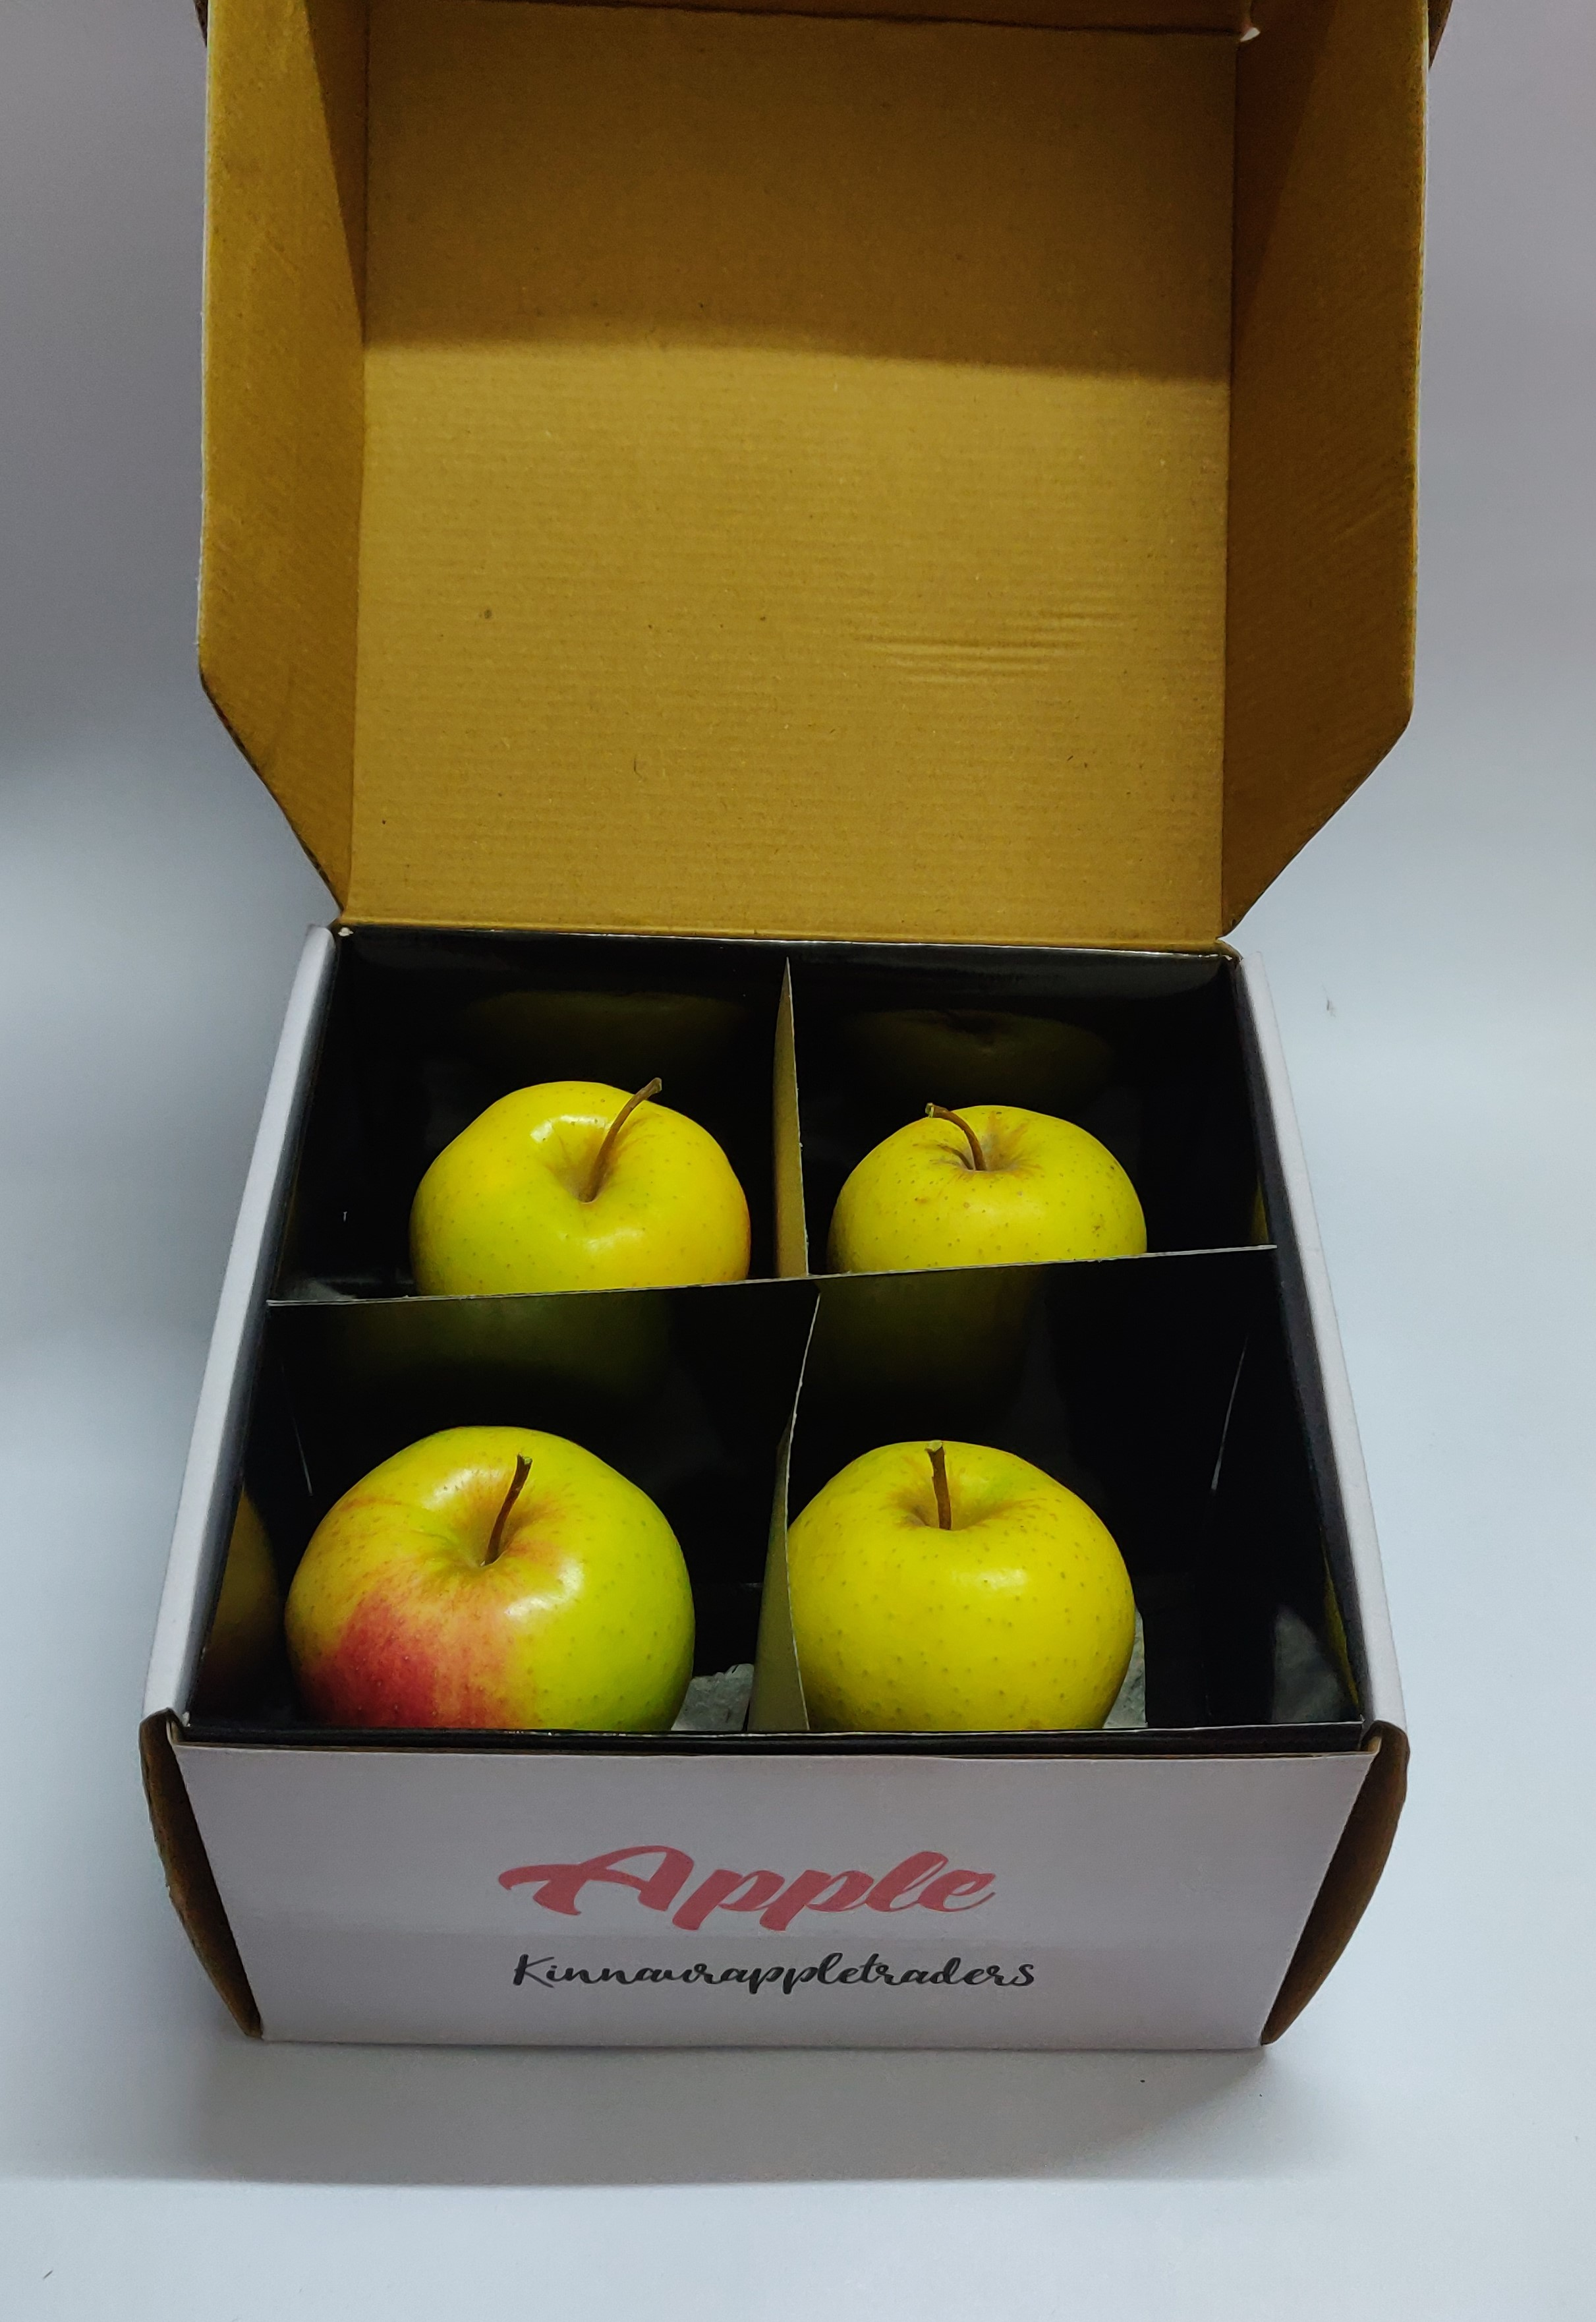 Golden apples packed